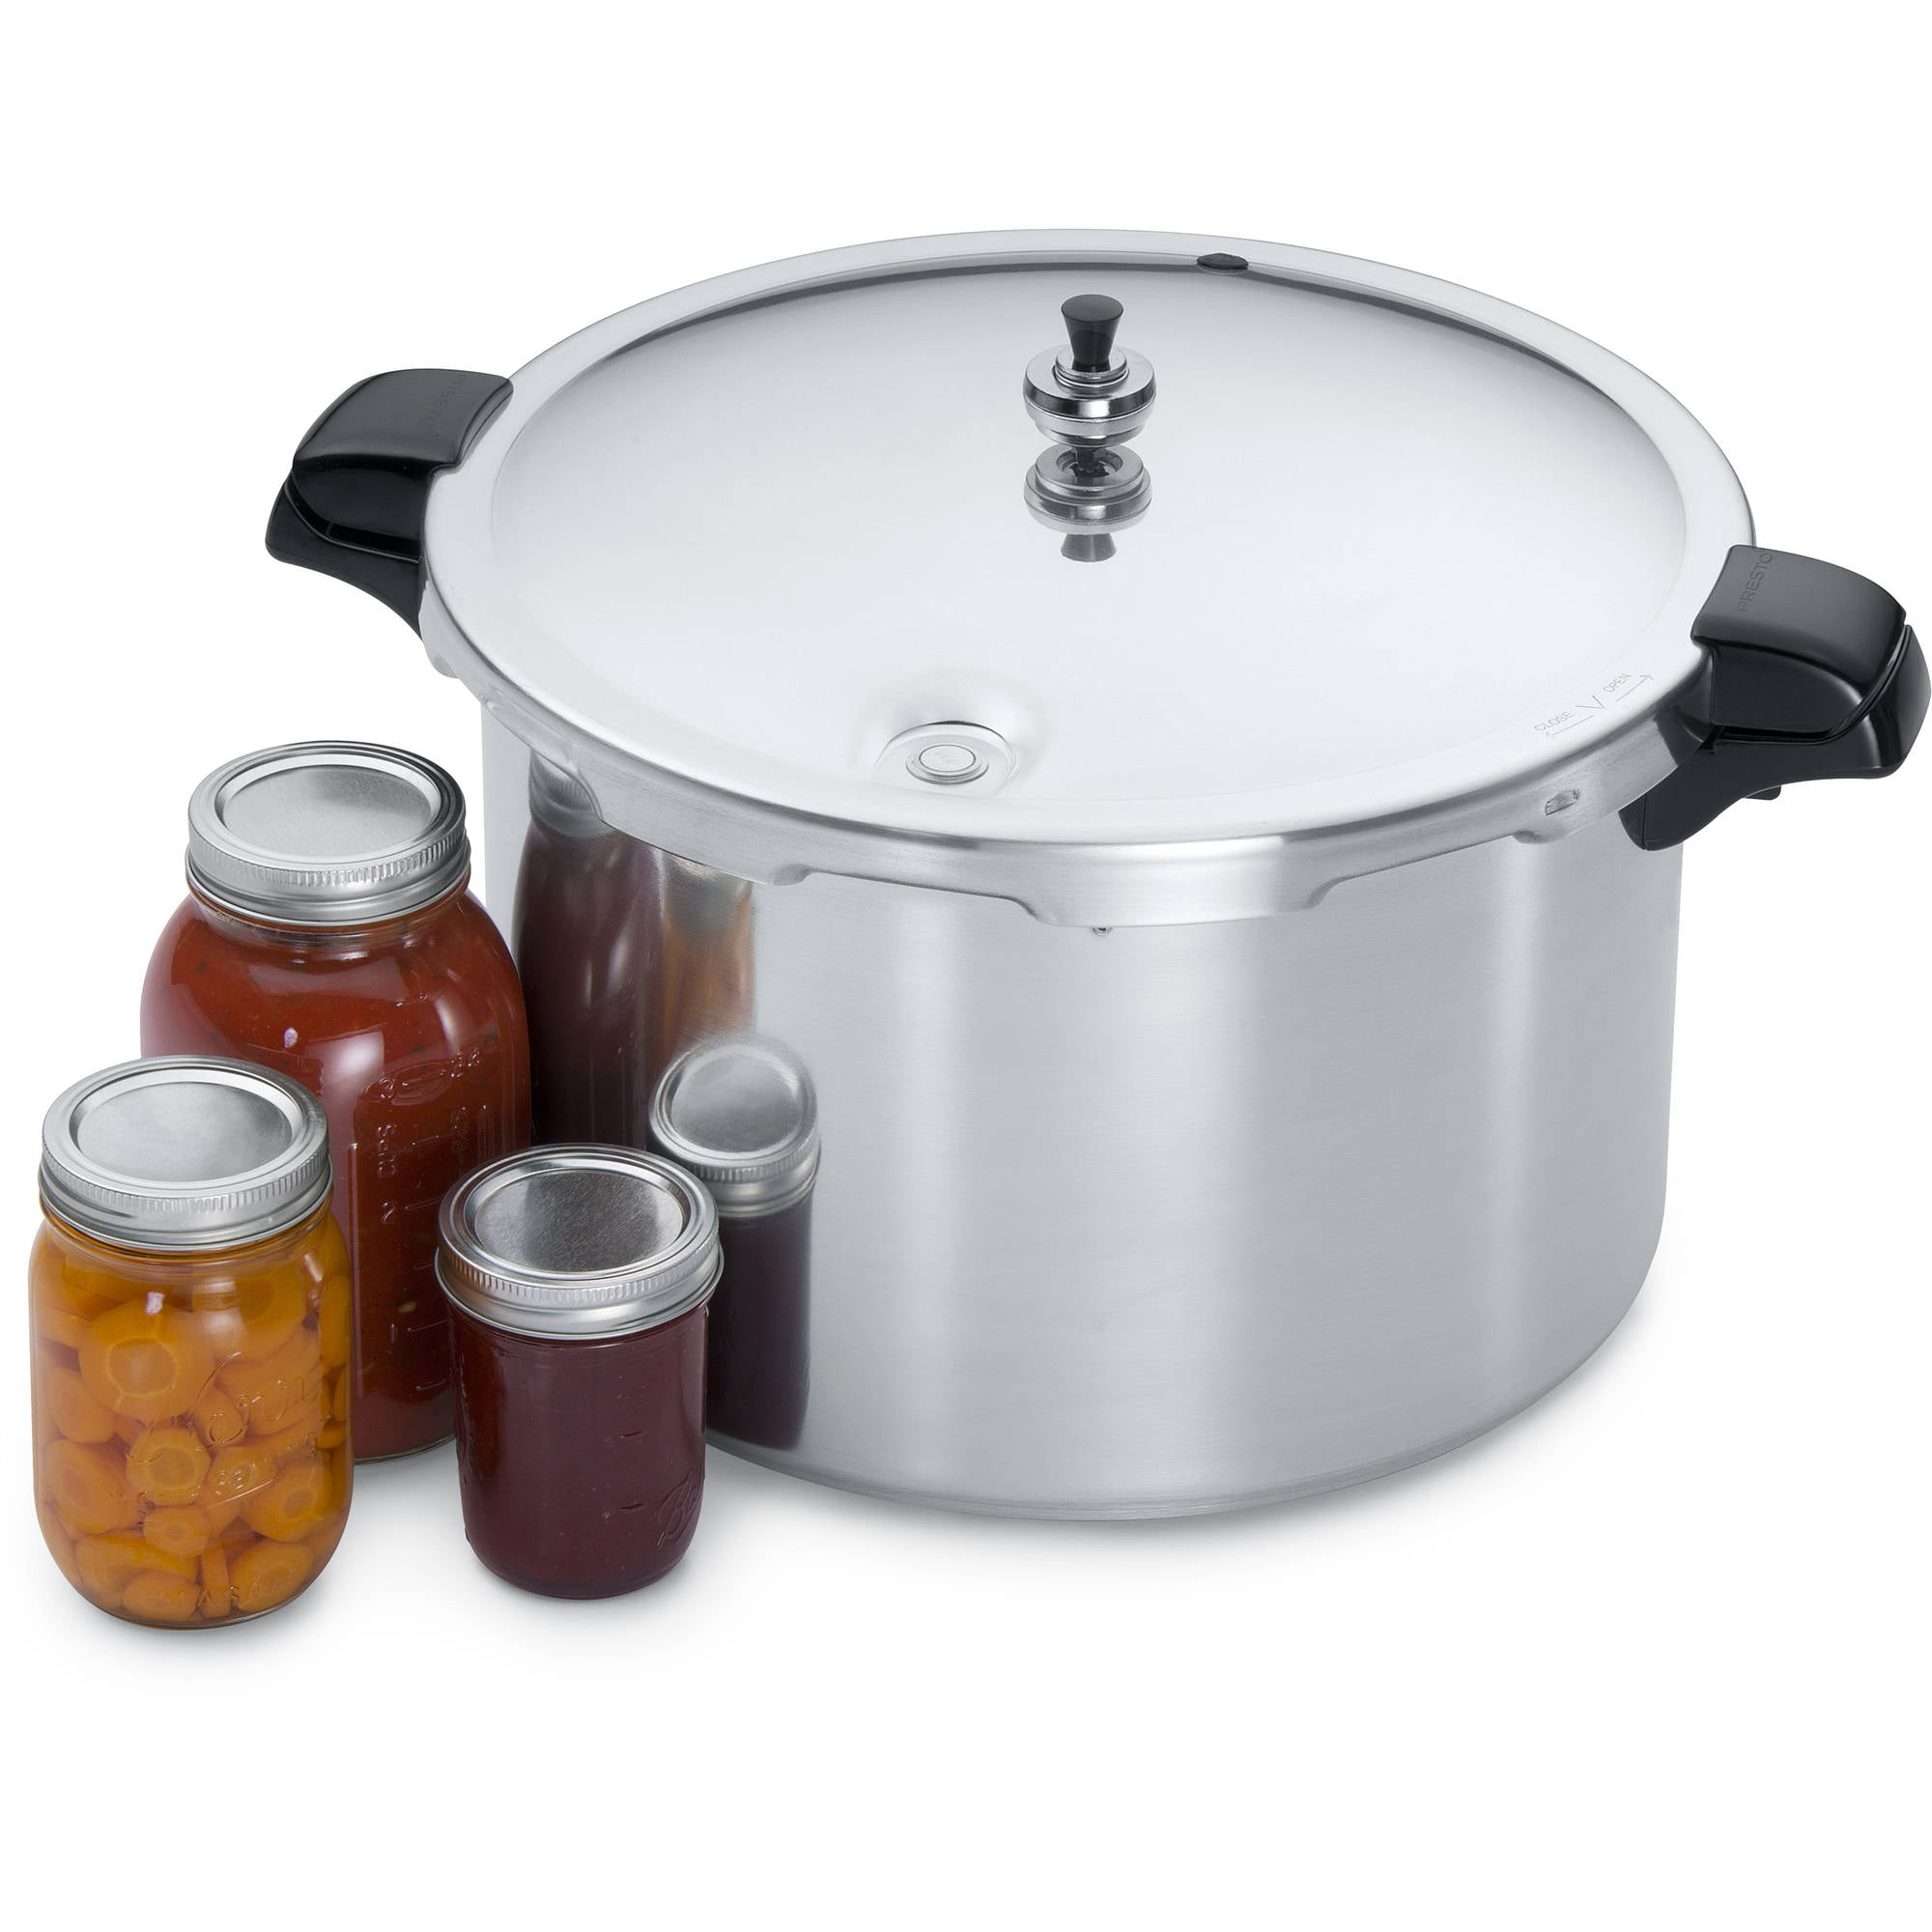 Presto 16-Quart Pressure Canner and Cooker 01745